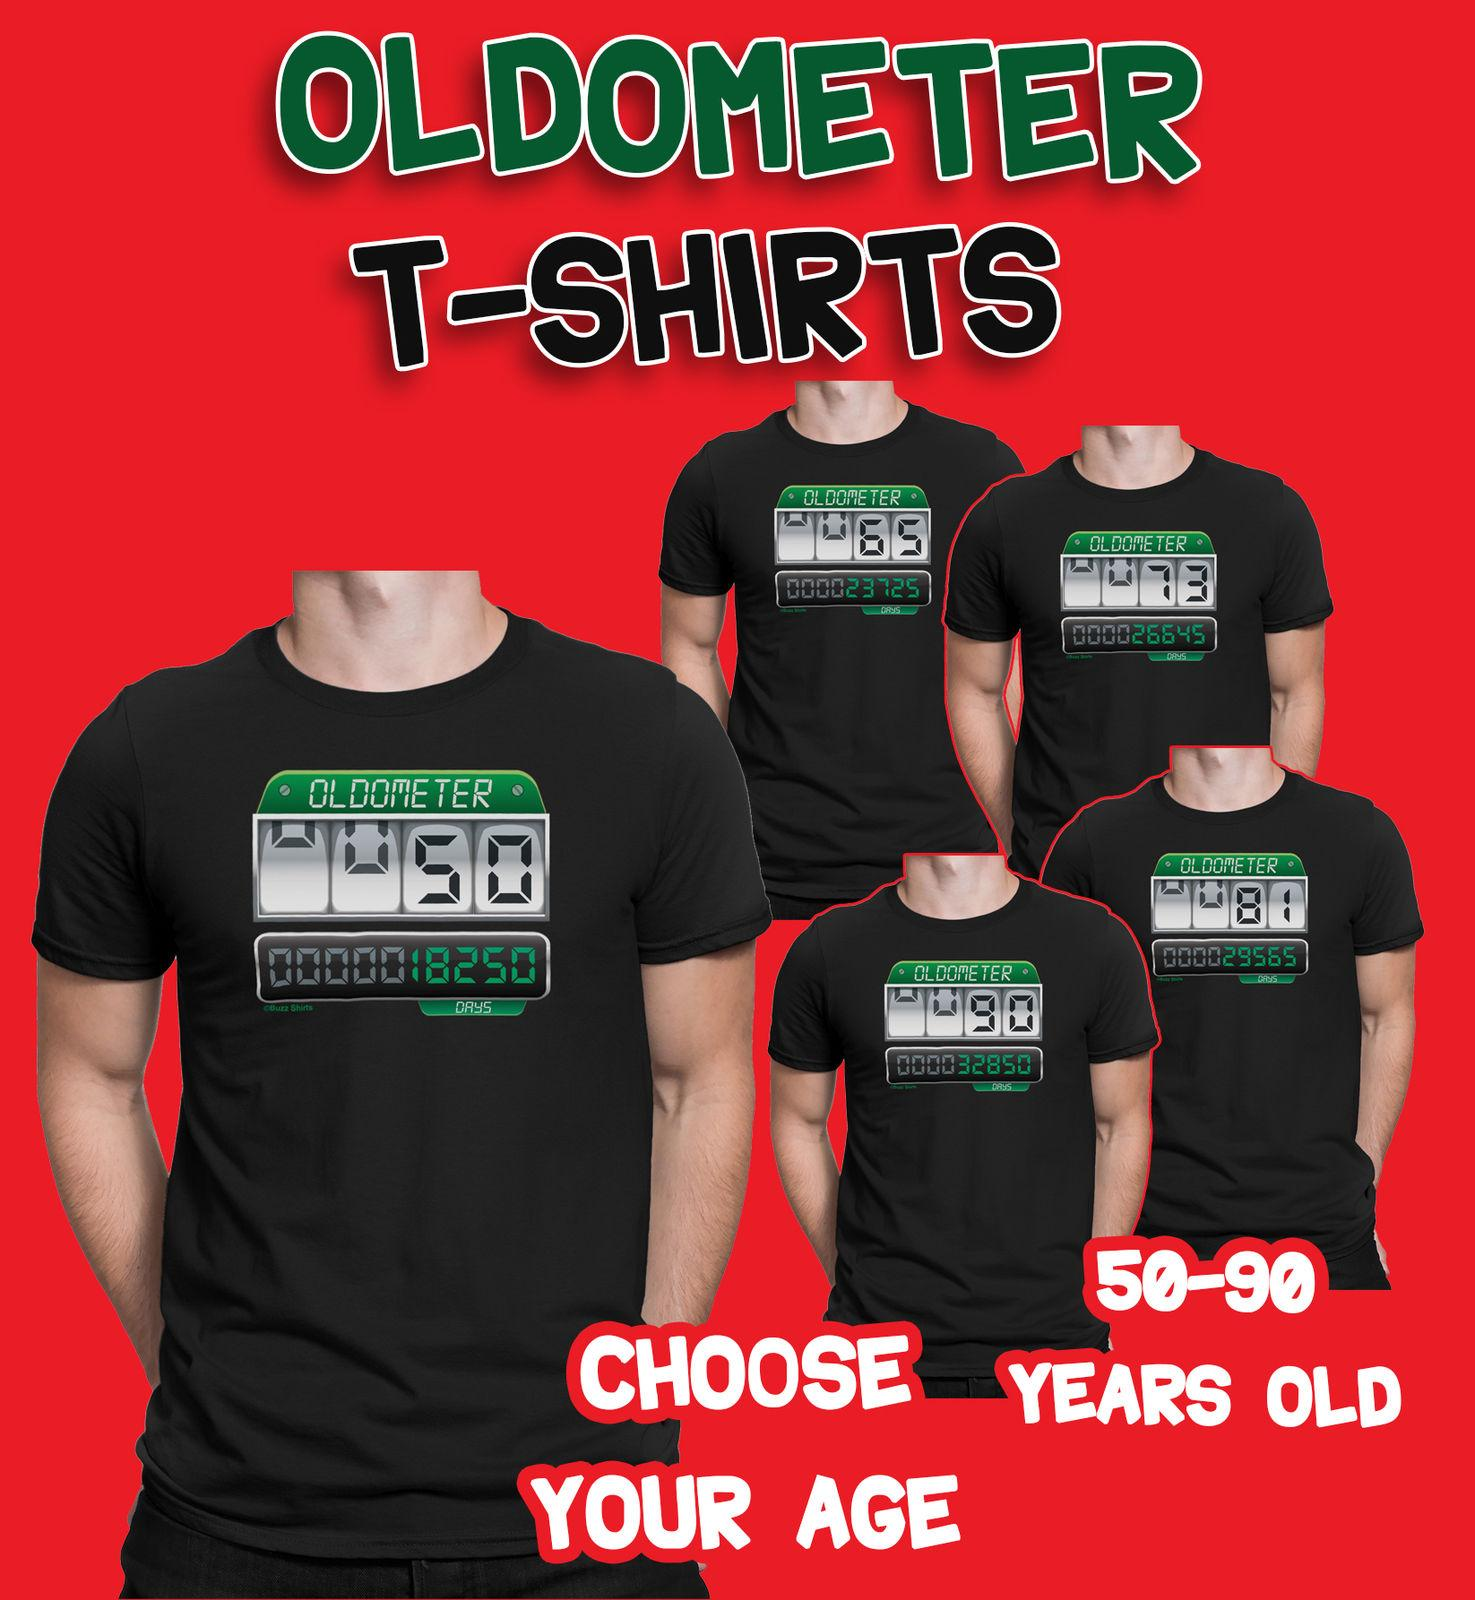 Mens 50th To 90th BIRTHDAY TShirts OLDOMETER 50 90 Years Old Joke Gift Online Shop T Shirt Shirts Designer From Nkotshirts 1101